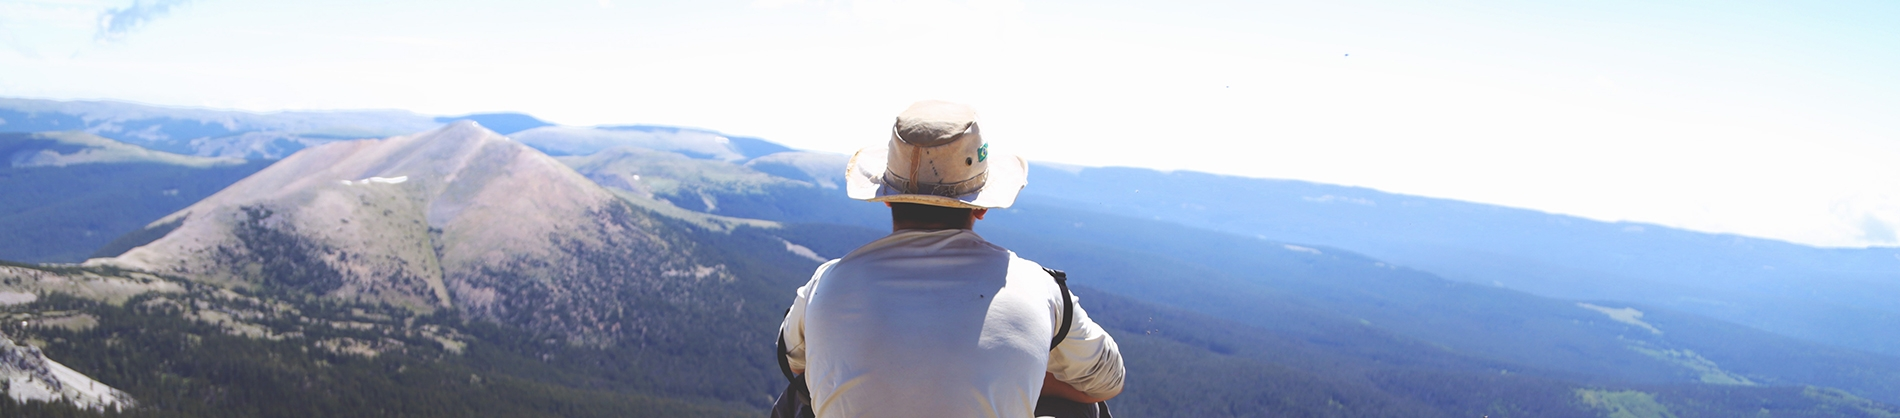 A man in a white hat sat looking over a mountain landscape